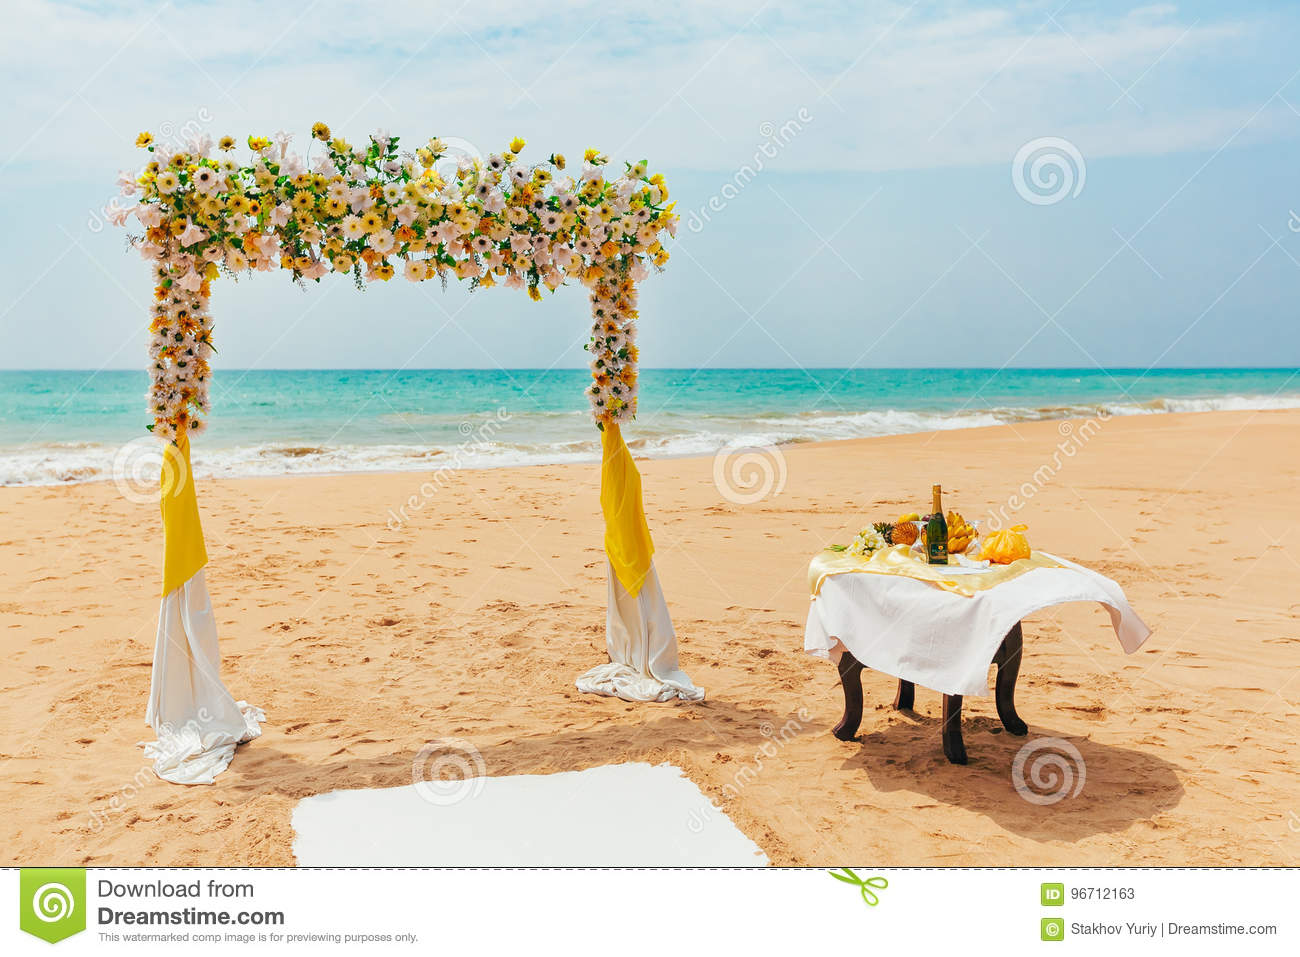 Outdoor Wedding Flower Ideas For A Beach Wedding: Wedding Arch Decorated With Flowers On A Tropical Sand